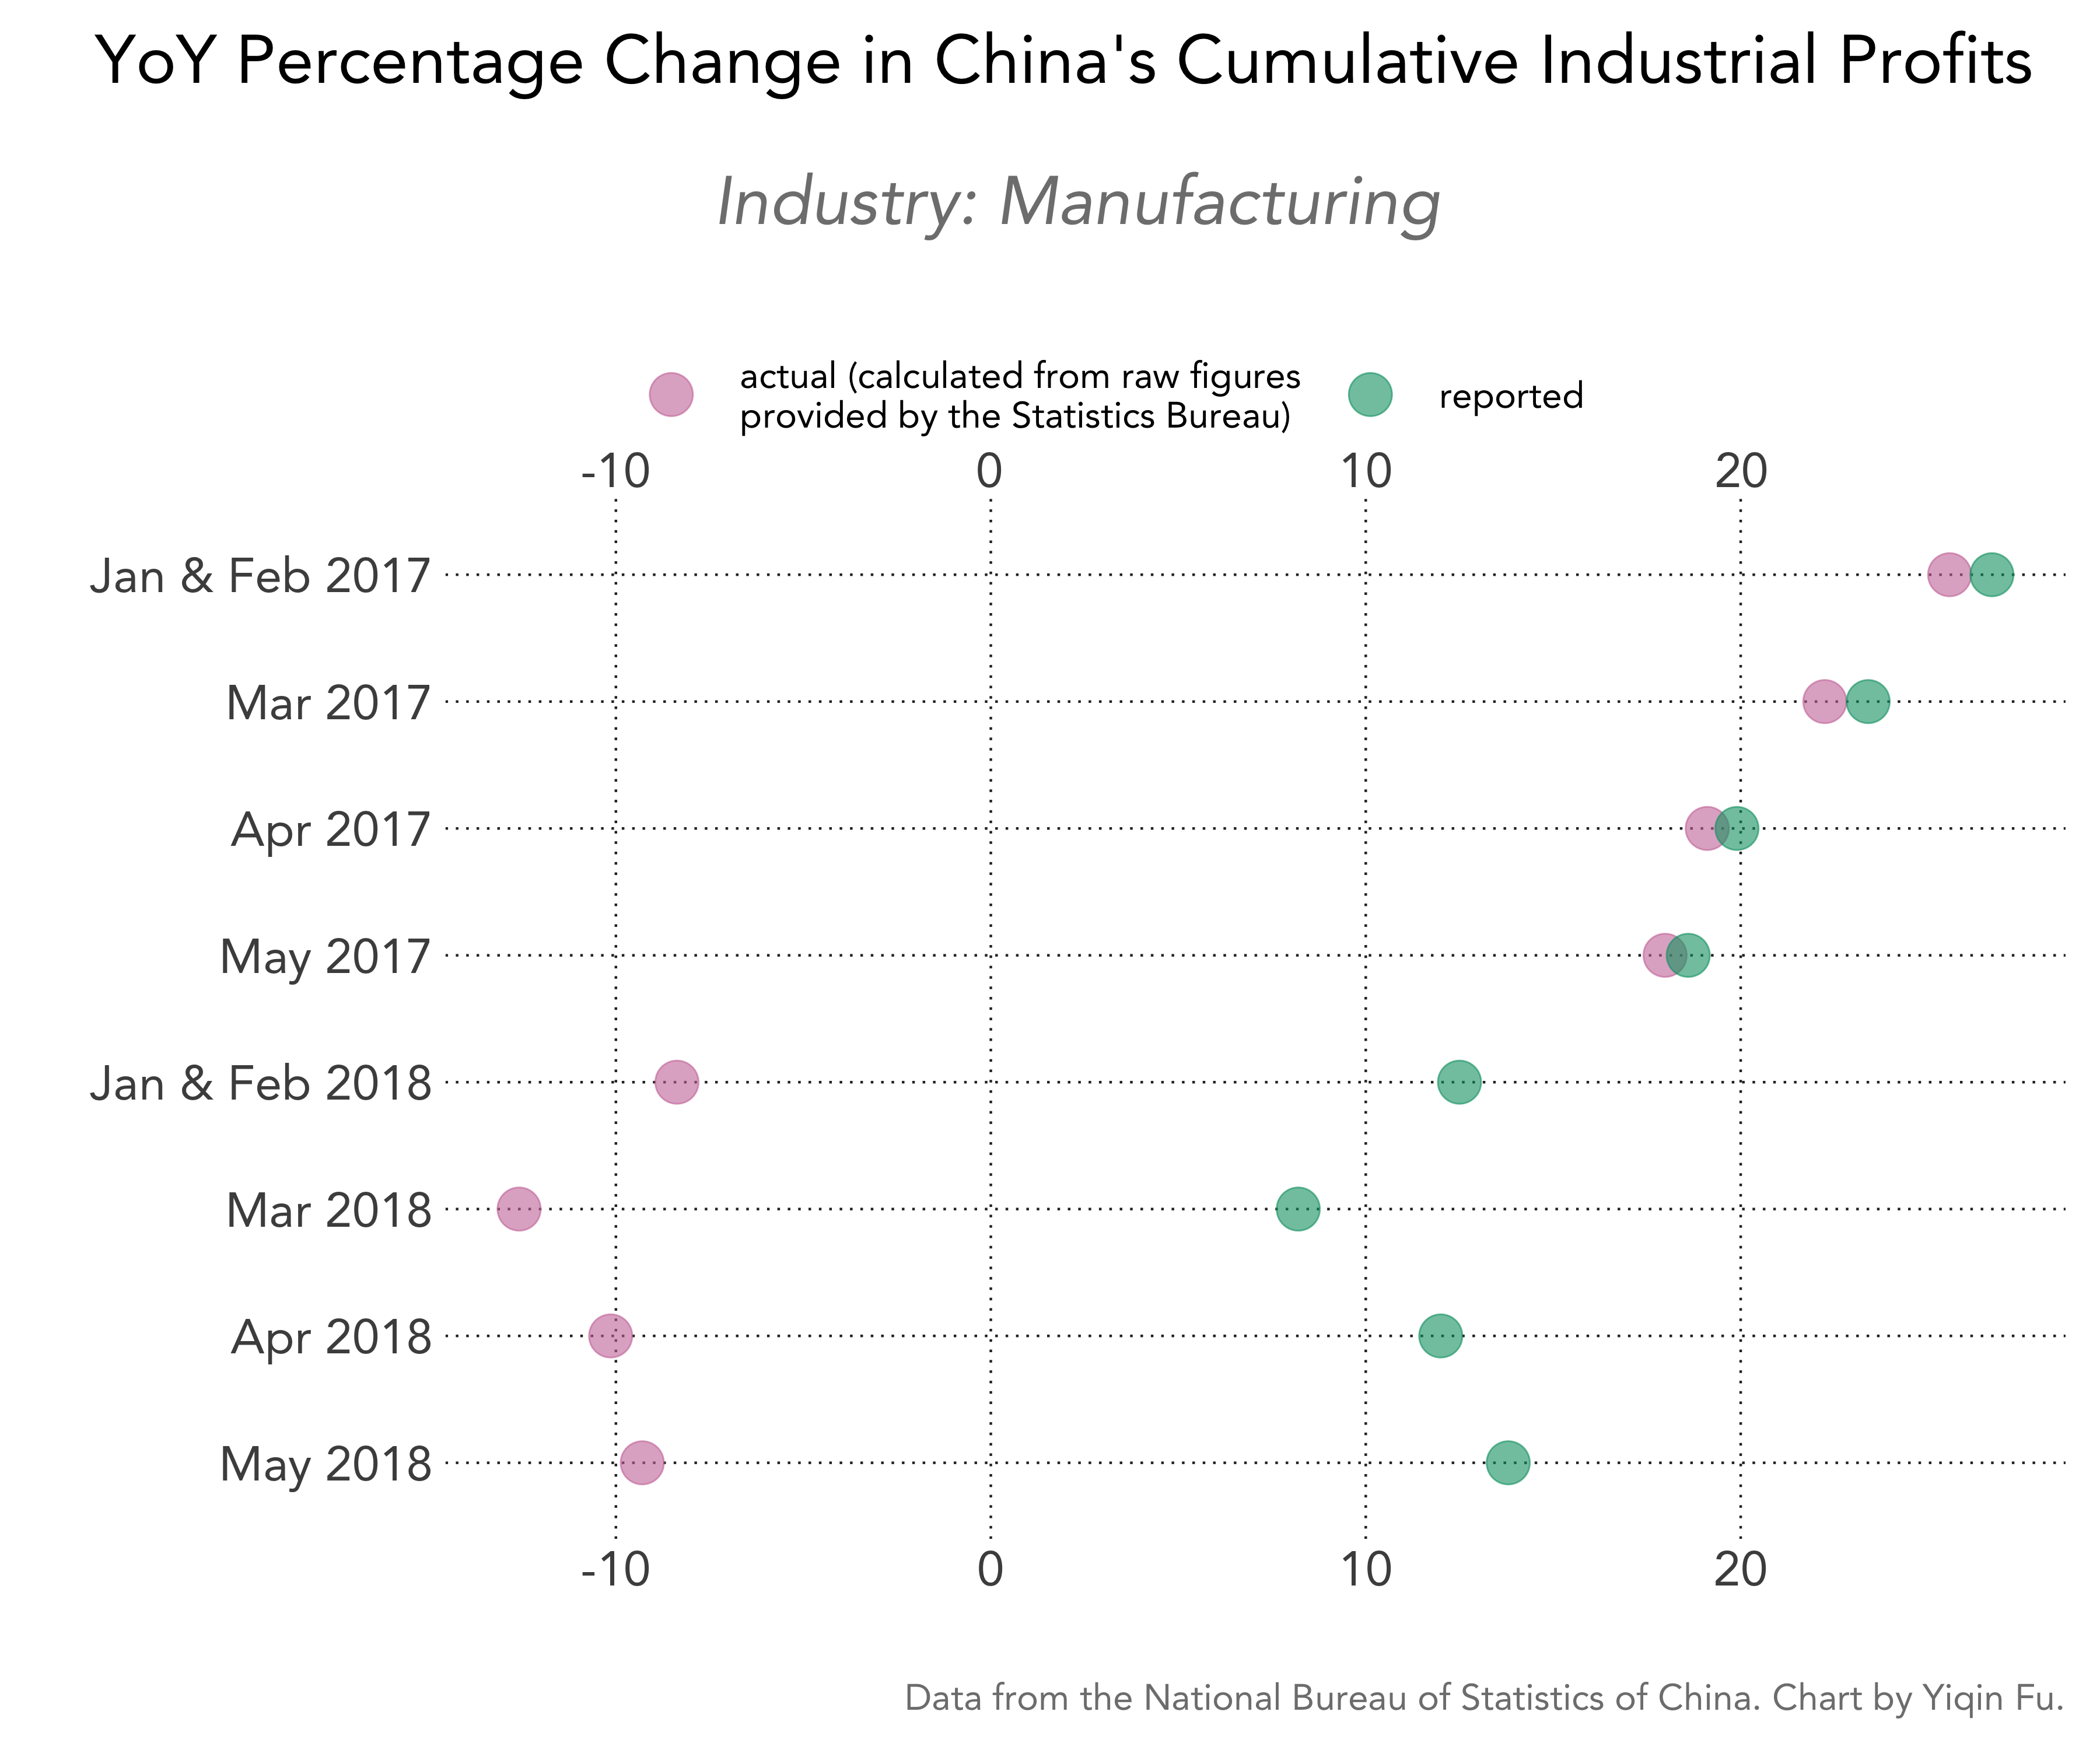 china-cumulative-industrial-profits-pct-change-actual-vs-reported-manufacturing